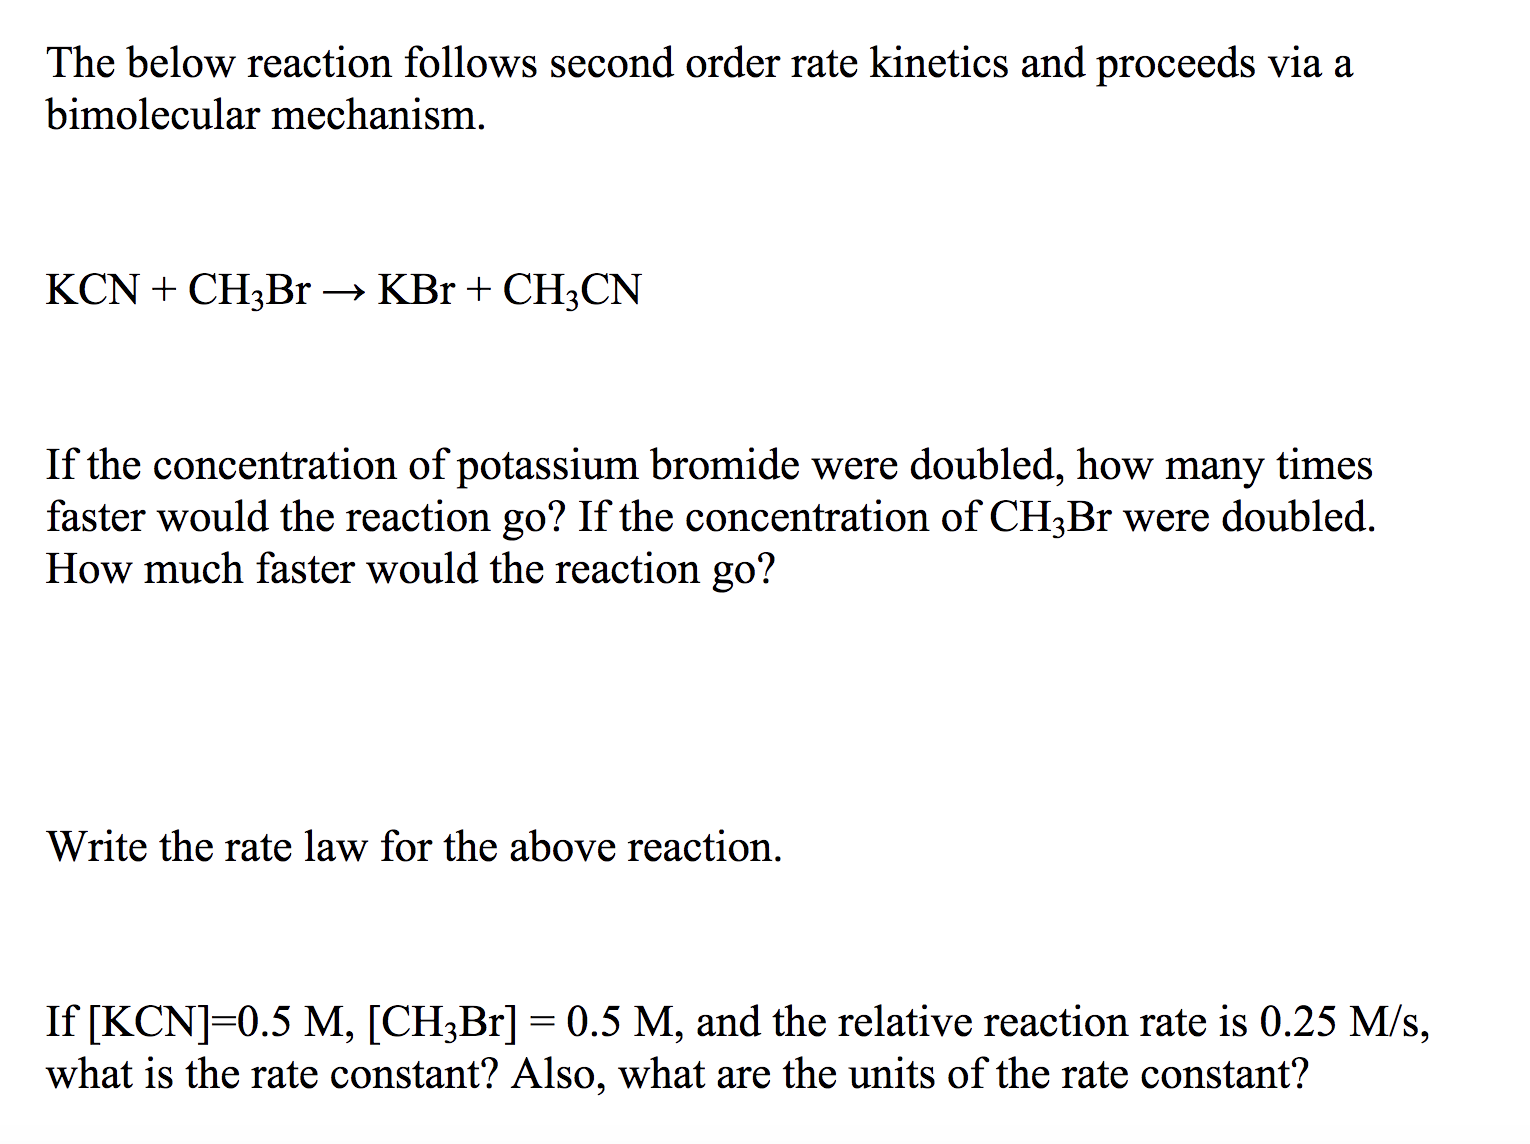 The below reaction follows second order rate kinetics and proceeds via a bimolecular mechanism. KCNCH3B1 -» KBr + CH3CN If the concentration of potassium bromide were doubled, how many times faster would the reaction go? If the concentration of CH3Br were doubled. How much faster would the reaction go? Write the rate law for the above reaction. If [KCN] 0.5 M, [CH3Br] 0.5 M, and the relative reaction rate is 0.25 M/s, what is the rate constant? Also, what are the units of the rate constant?